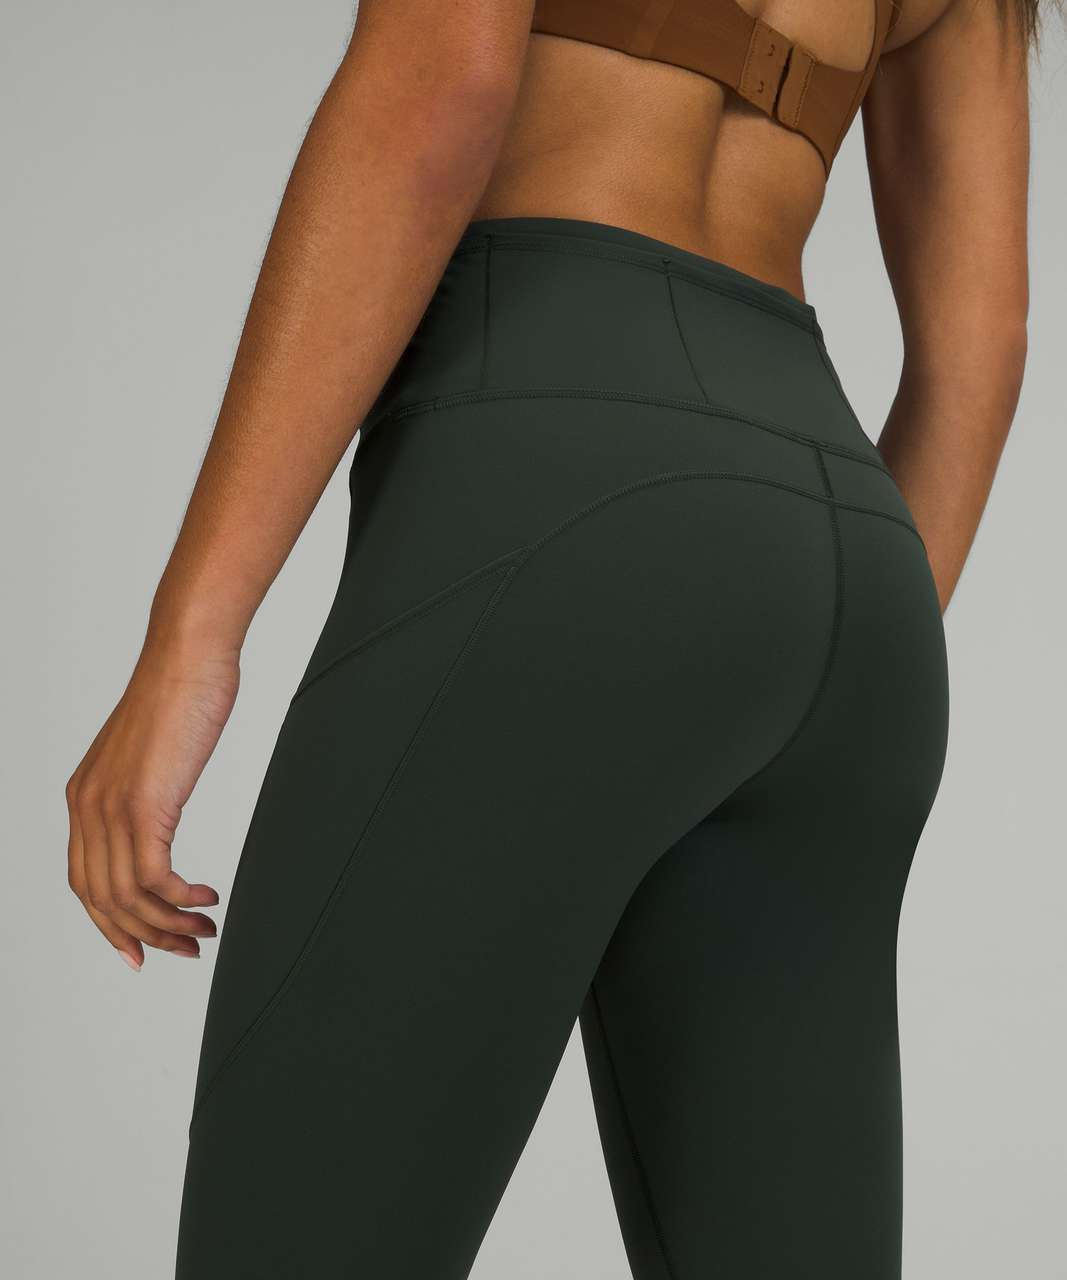 """Lululemon Fast and Free High-Rise Tight 28"""" *Brushed Nulux - Rainforest Green"""